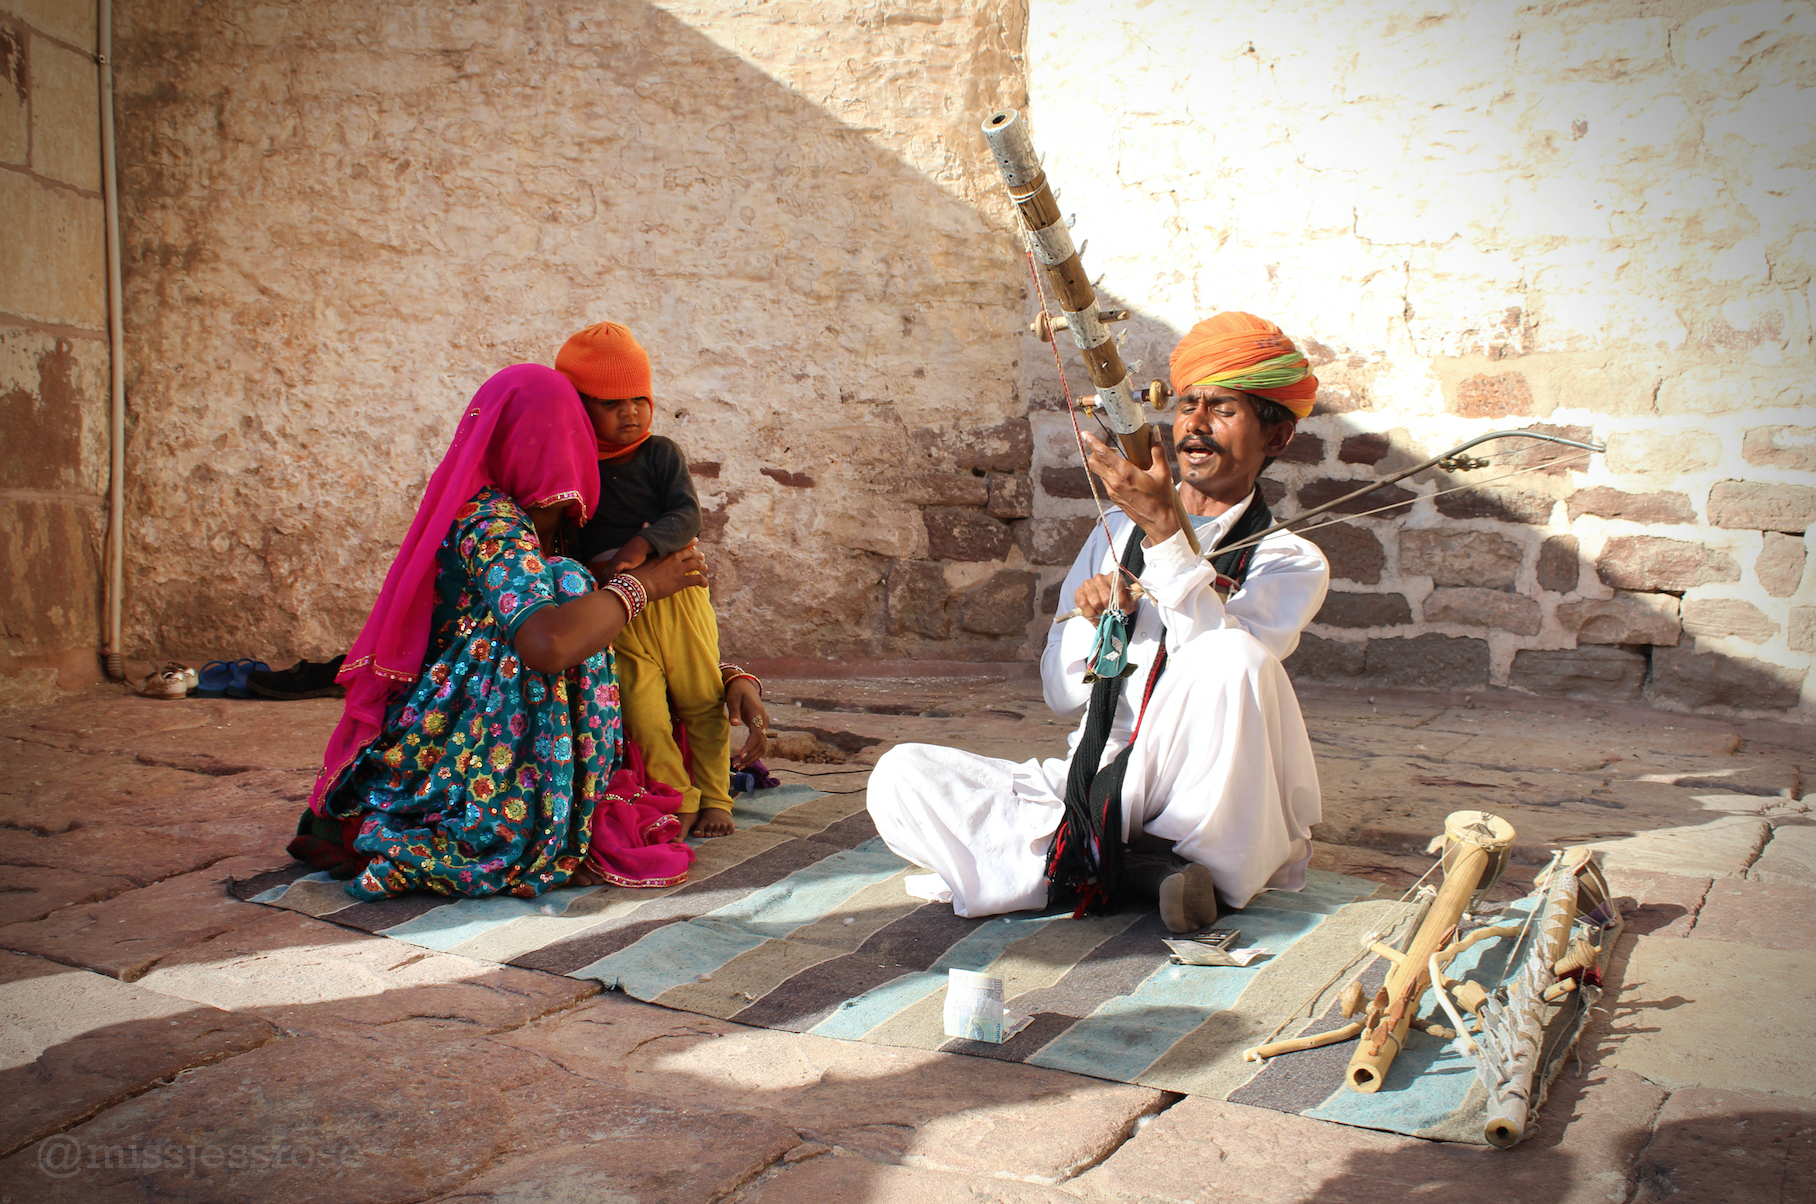 Musicians playing traditional instruments sit throughout the grounds.